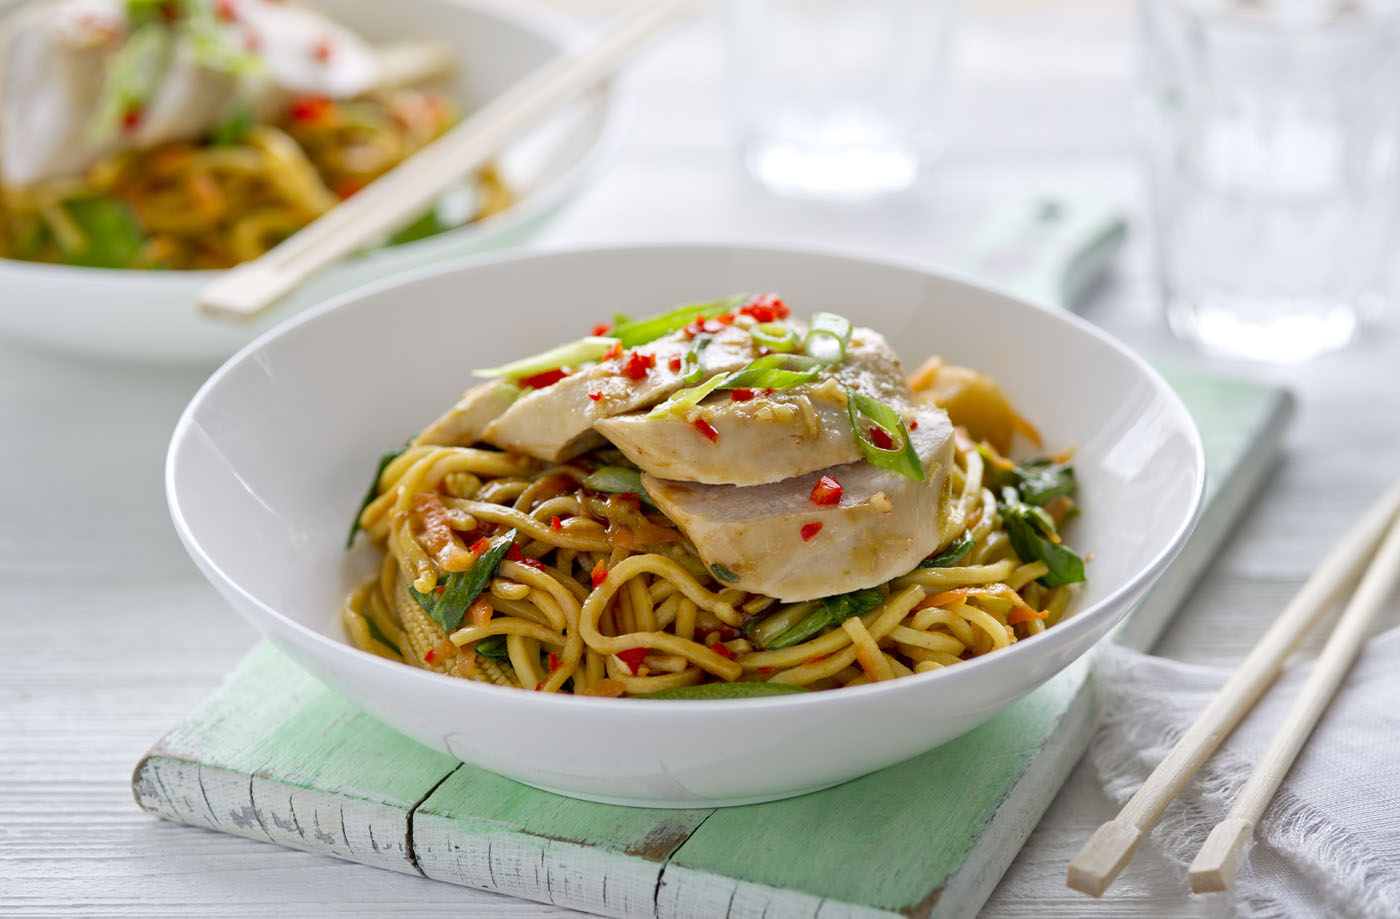 Healthy living balsamic chicken noodle stir fry recipe